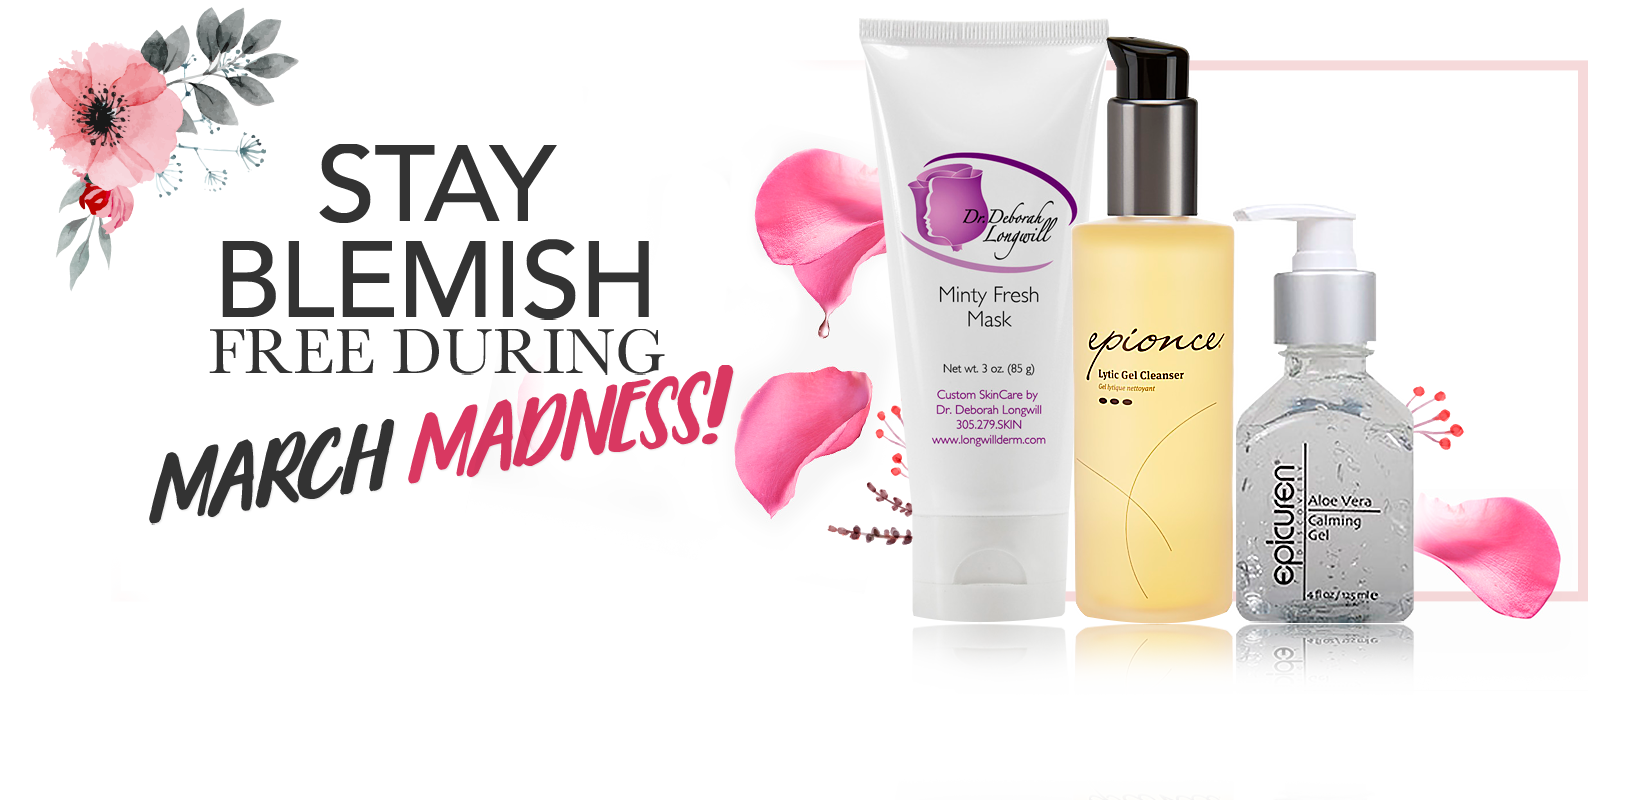 March products of the month